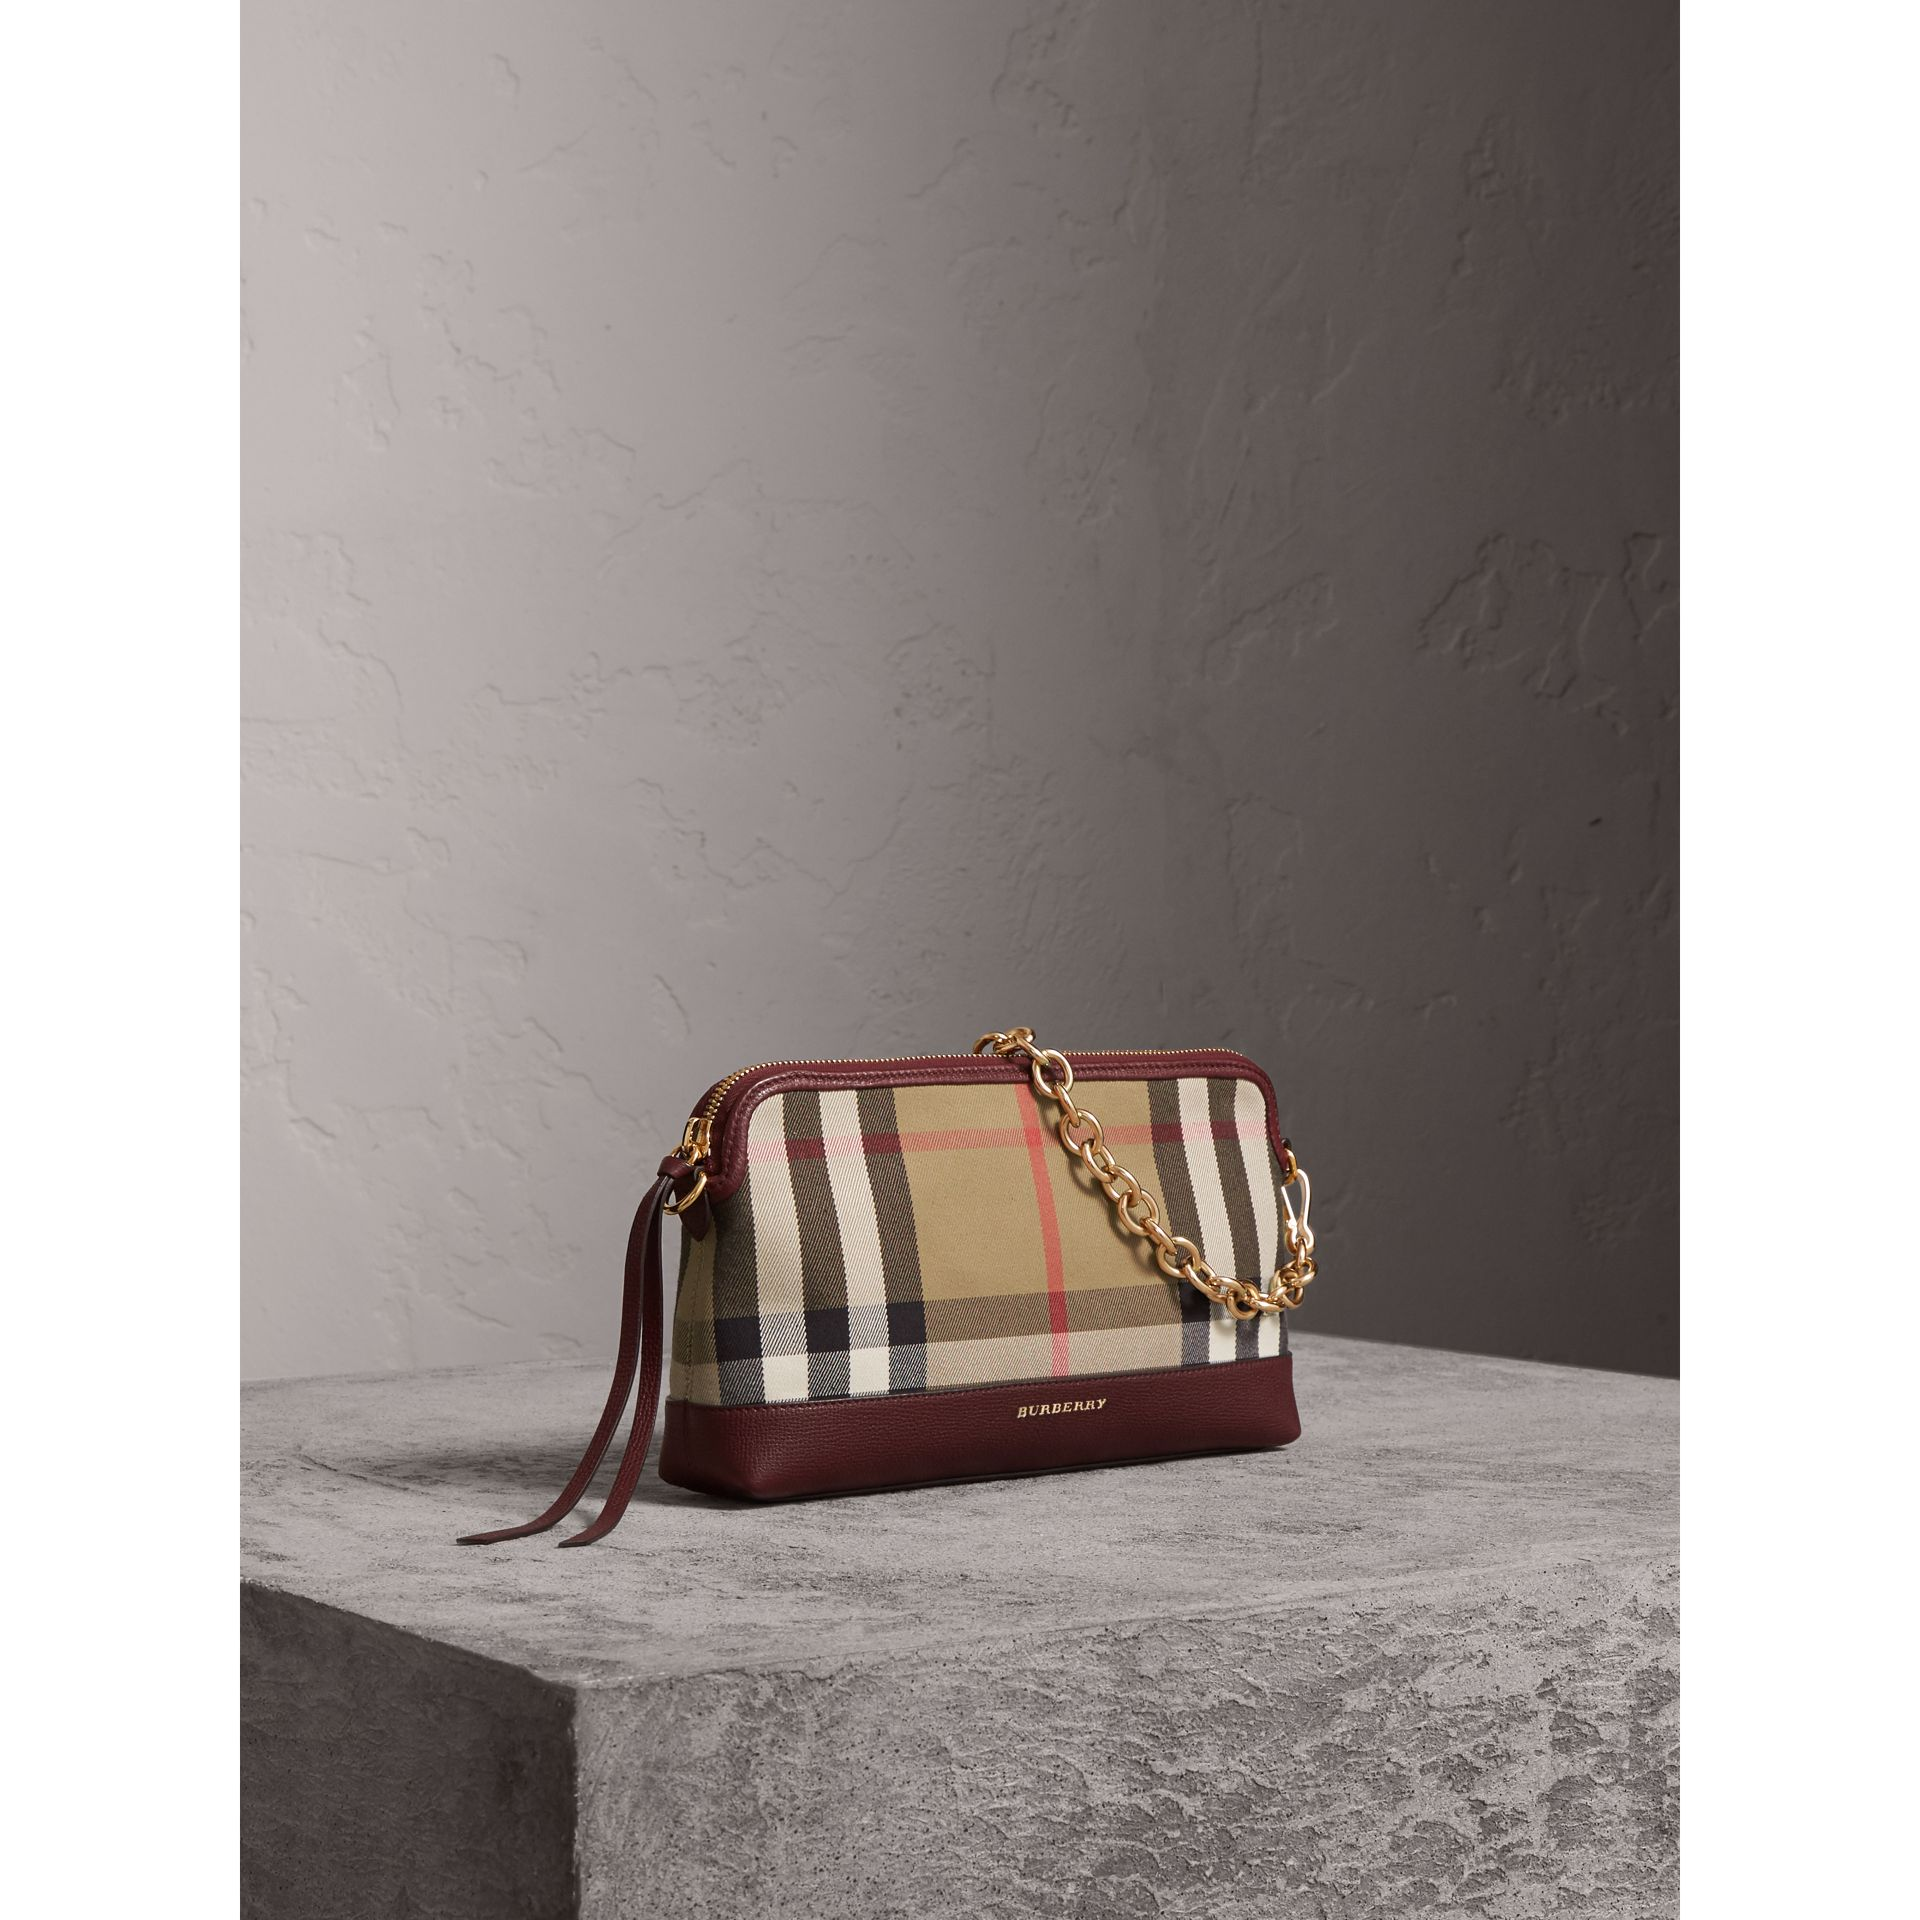 House Check and Leather Clutch Bag in Mahogany Red - Women | Burberry Canada - gallery image 8